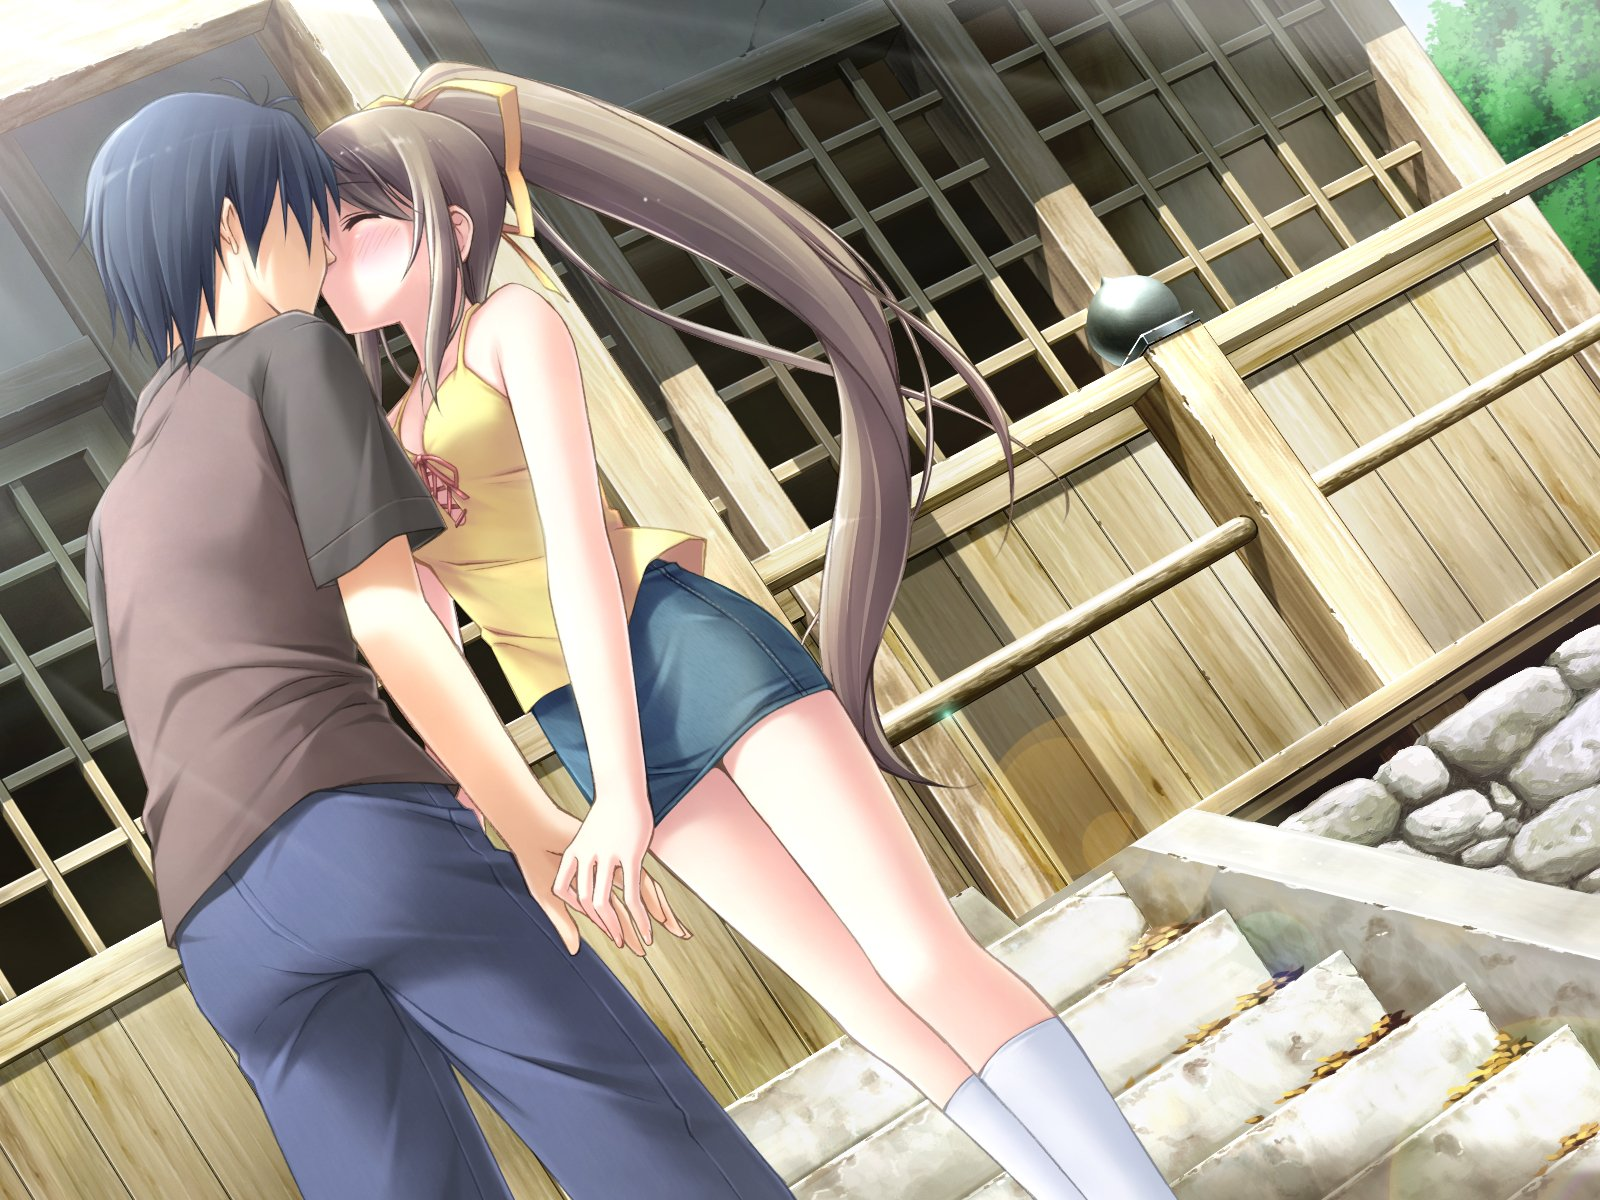 Animated Love Kiss Wallpaper : Anime Kiss Wallpapers - WallpaperSafari